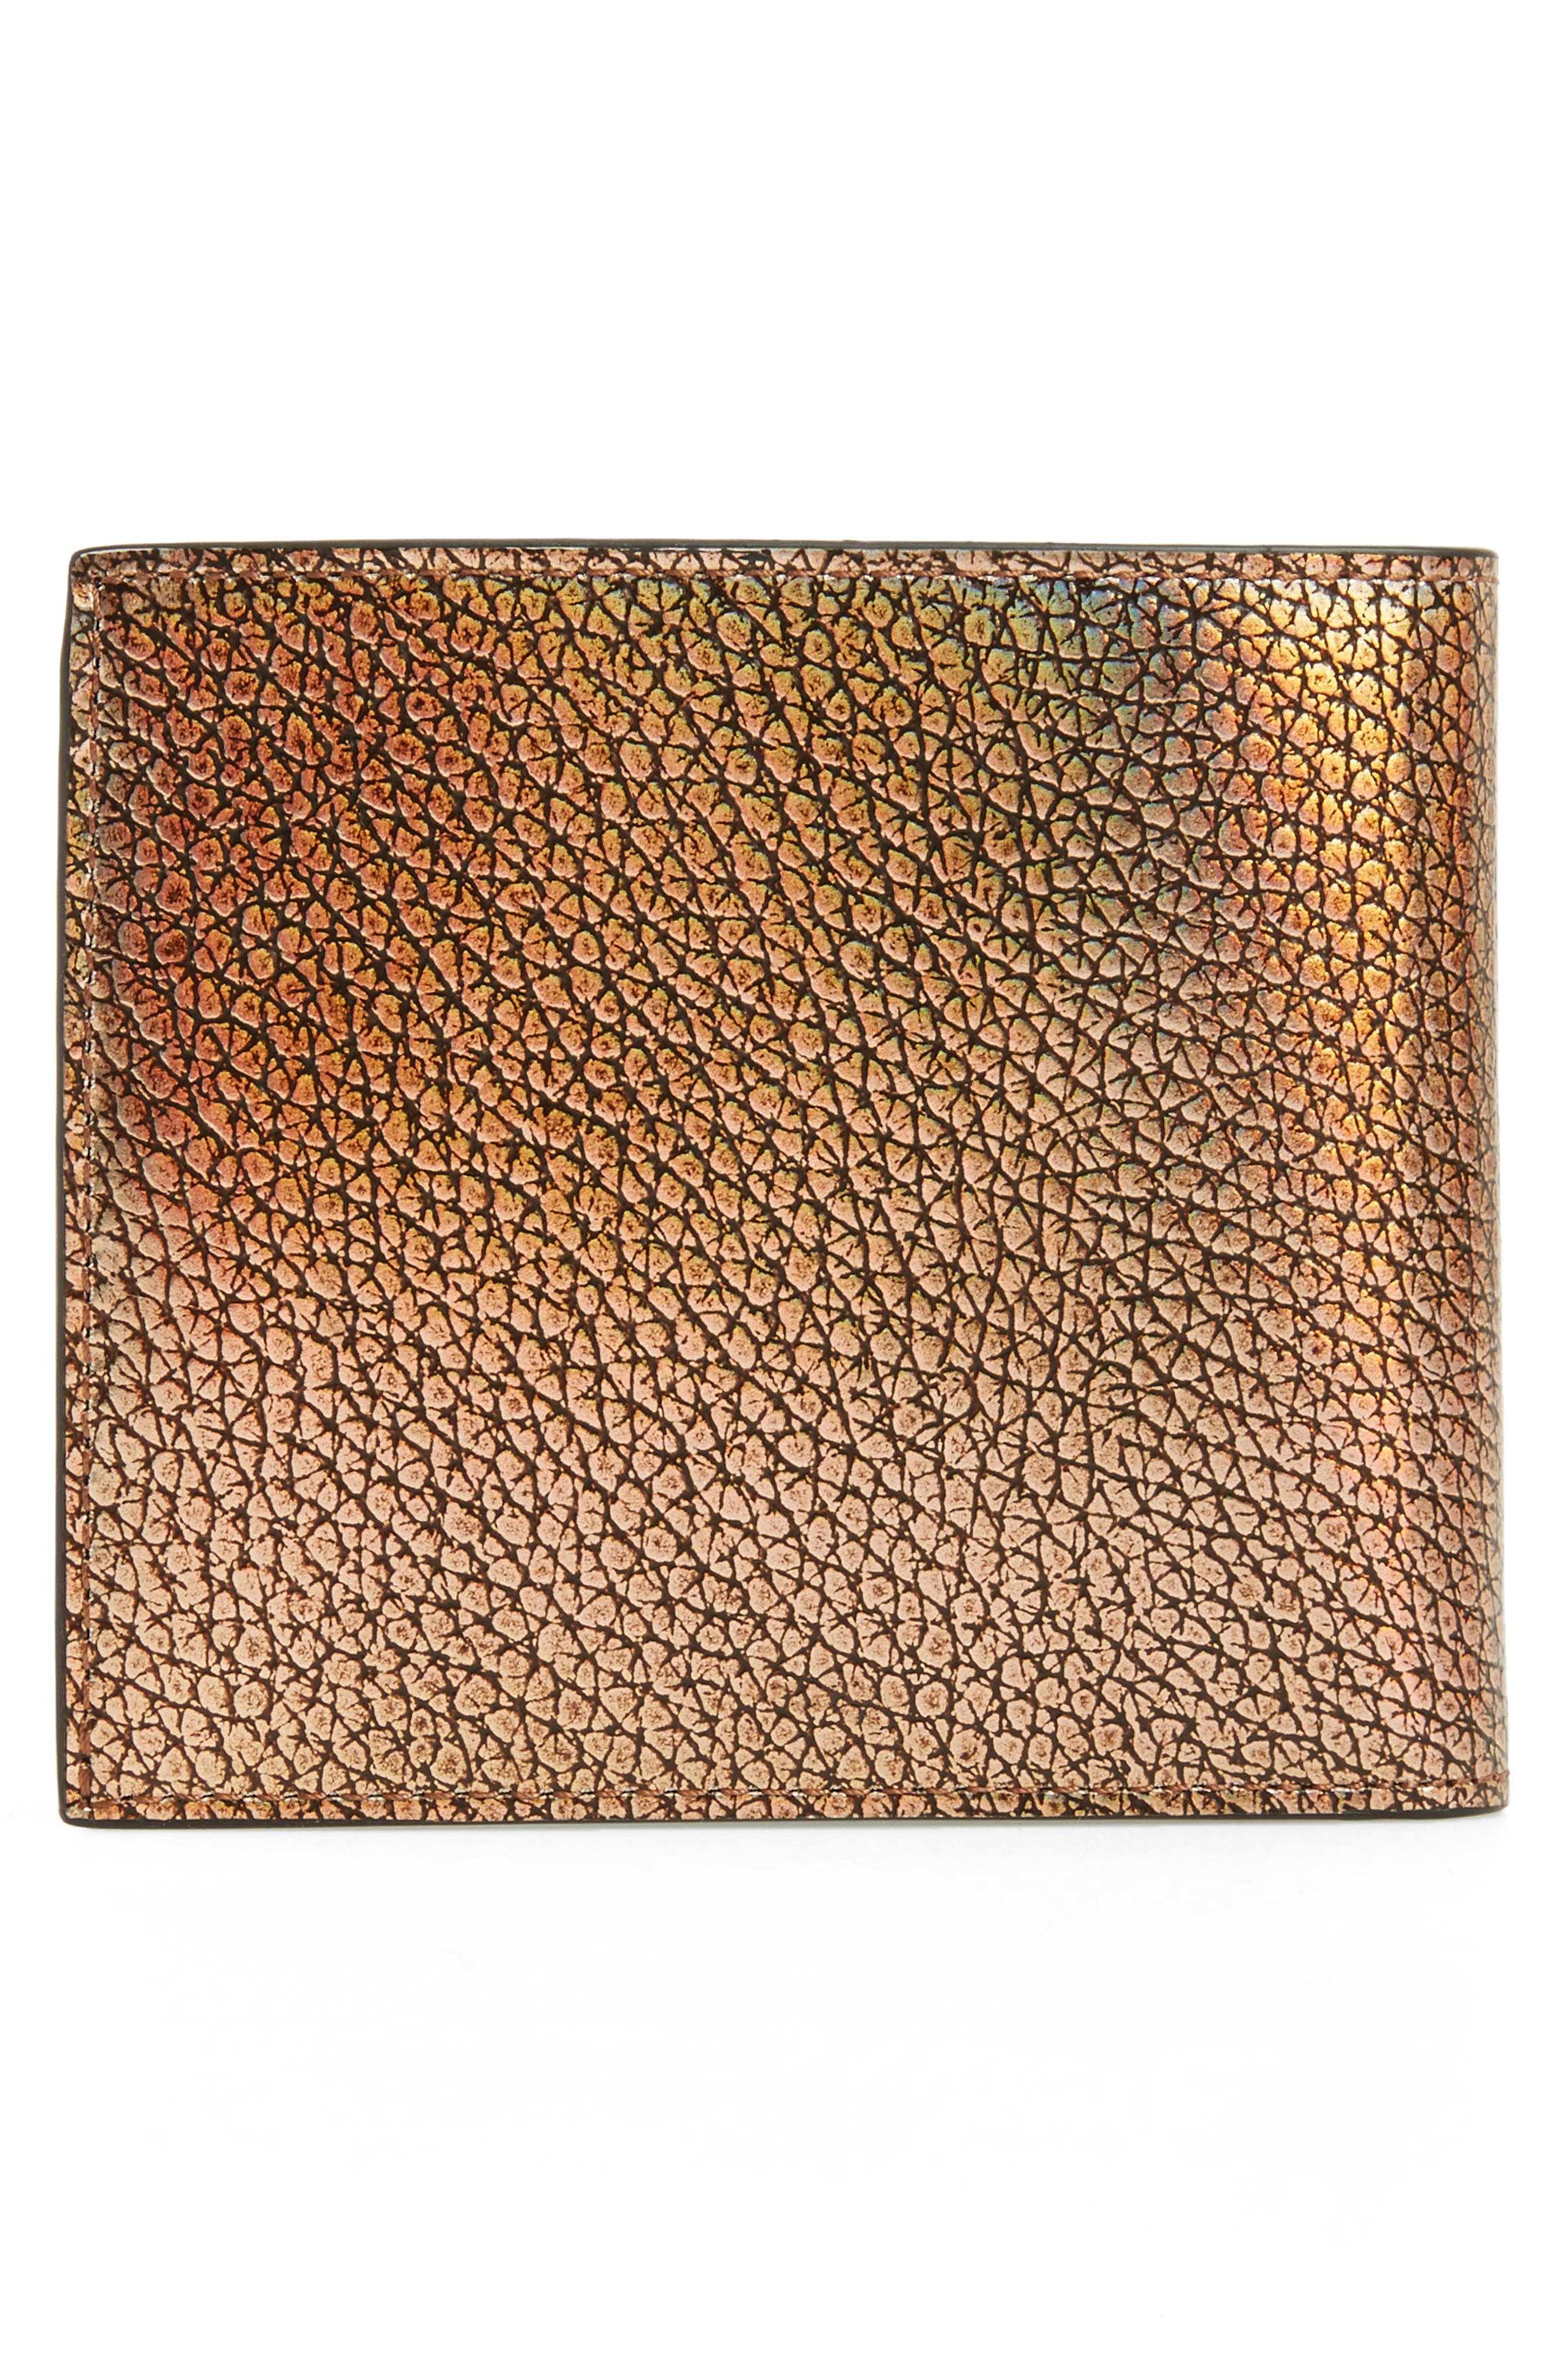 Metallic Leather Wallet,                             Alternate thumbnail 3, color,                             710